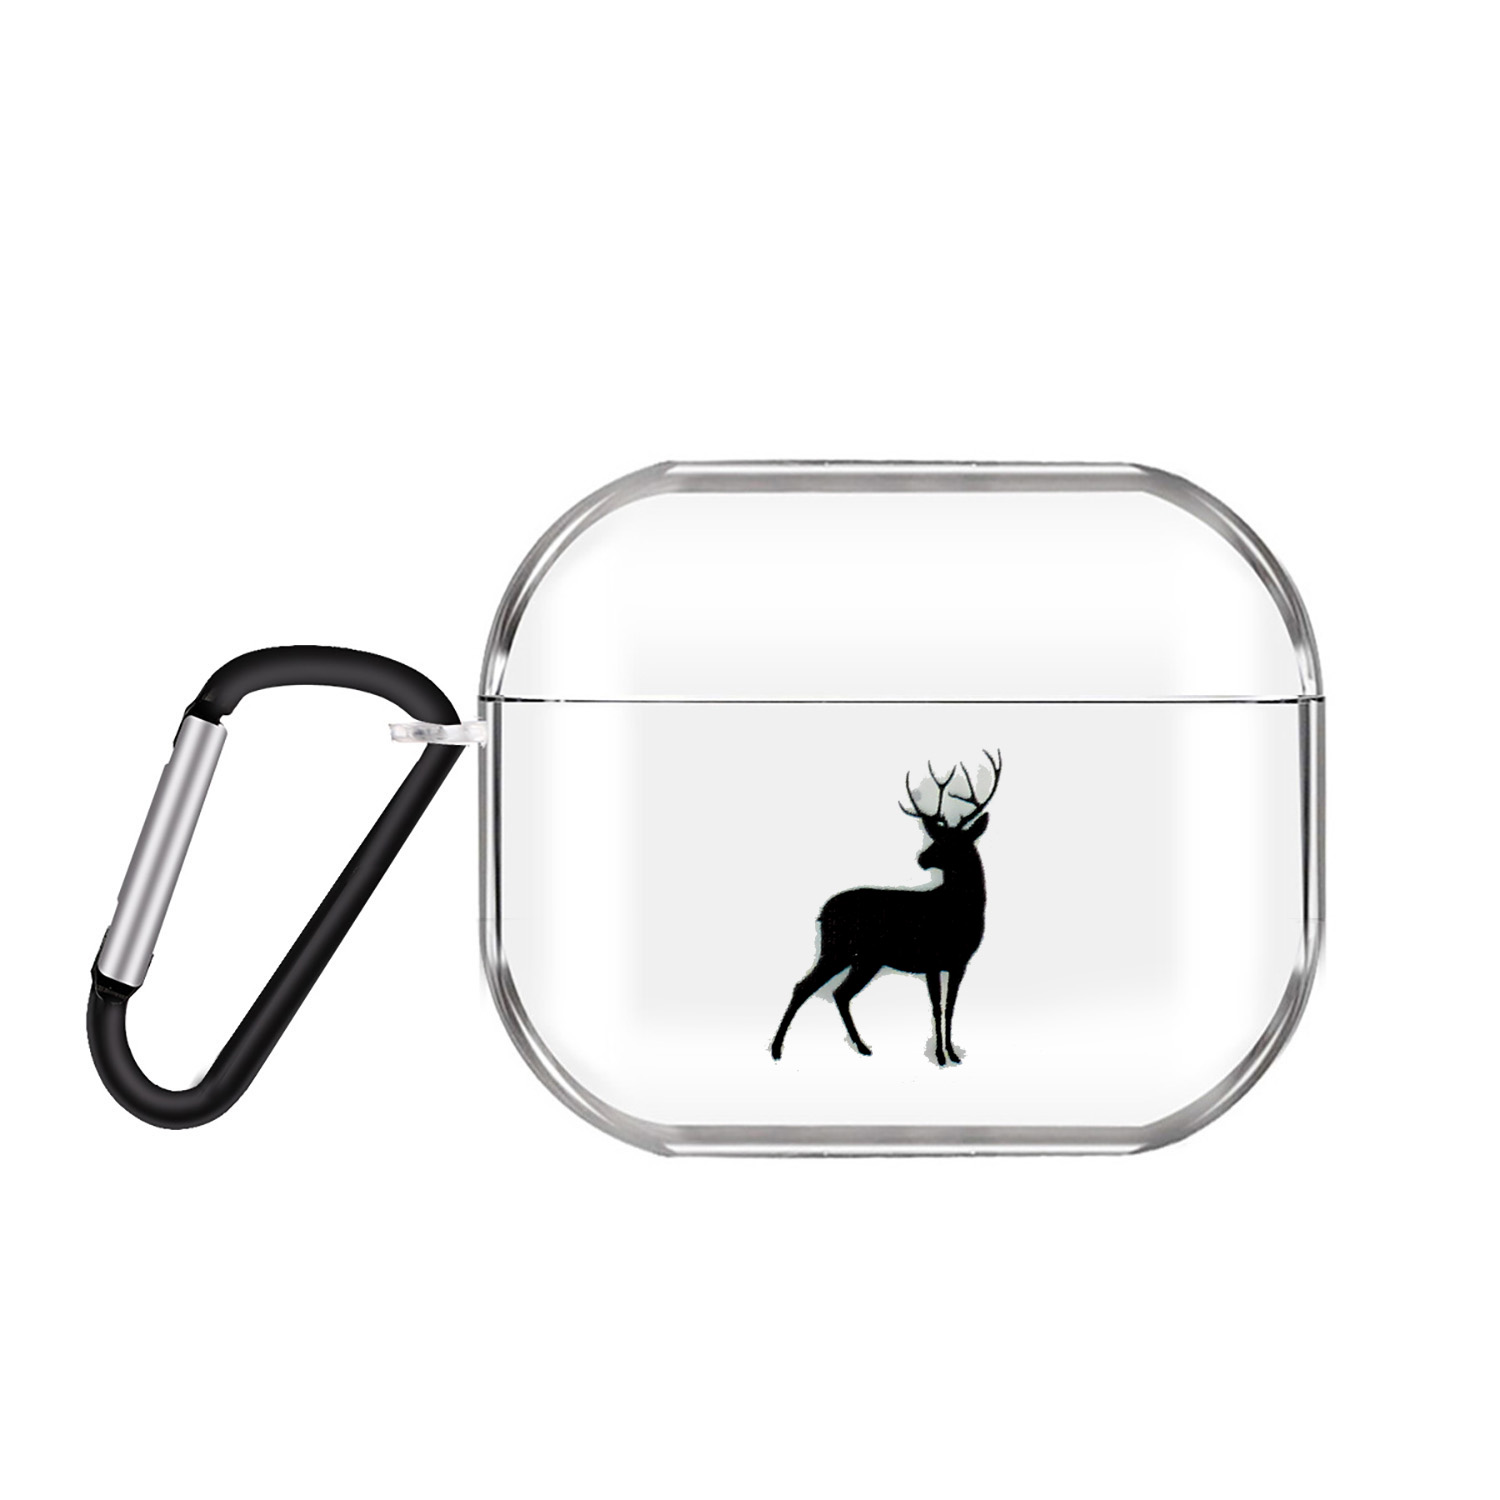 For AirPods Pro Headphones Case Clear Cute Earphone Shell with Metal Hook Overall Protection Cover 20 deer